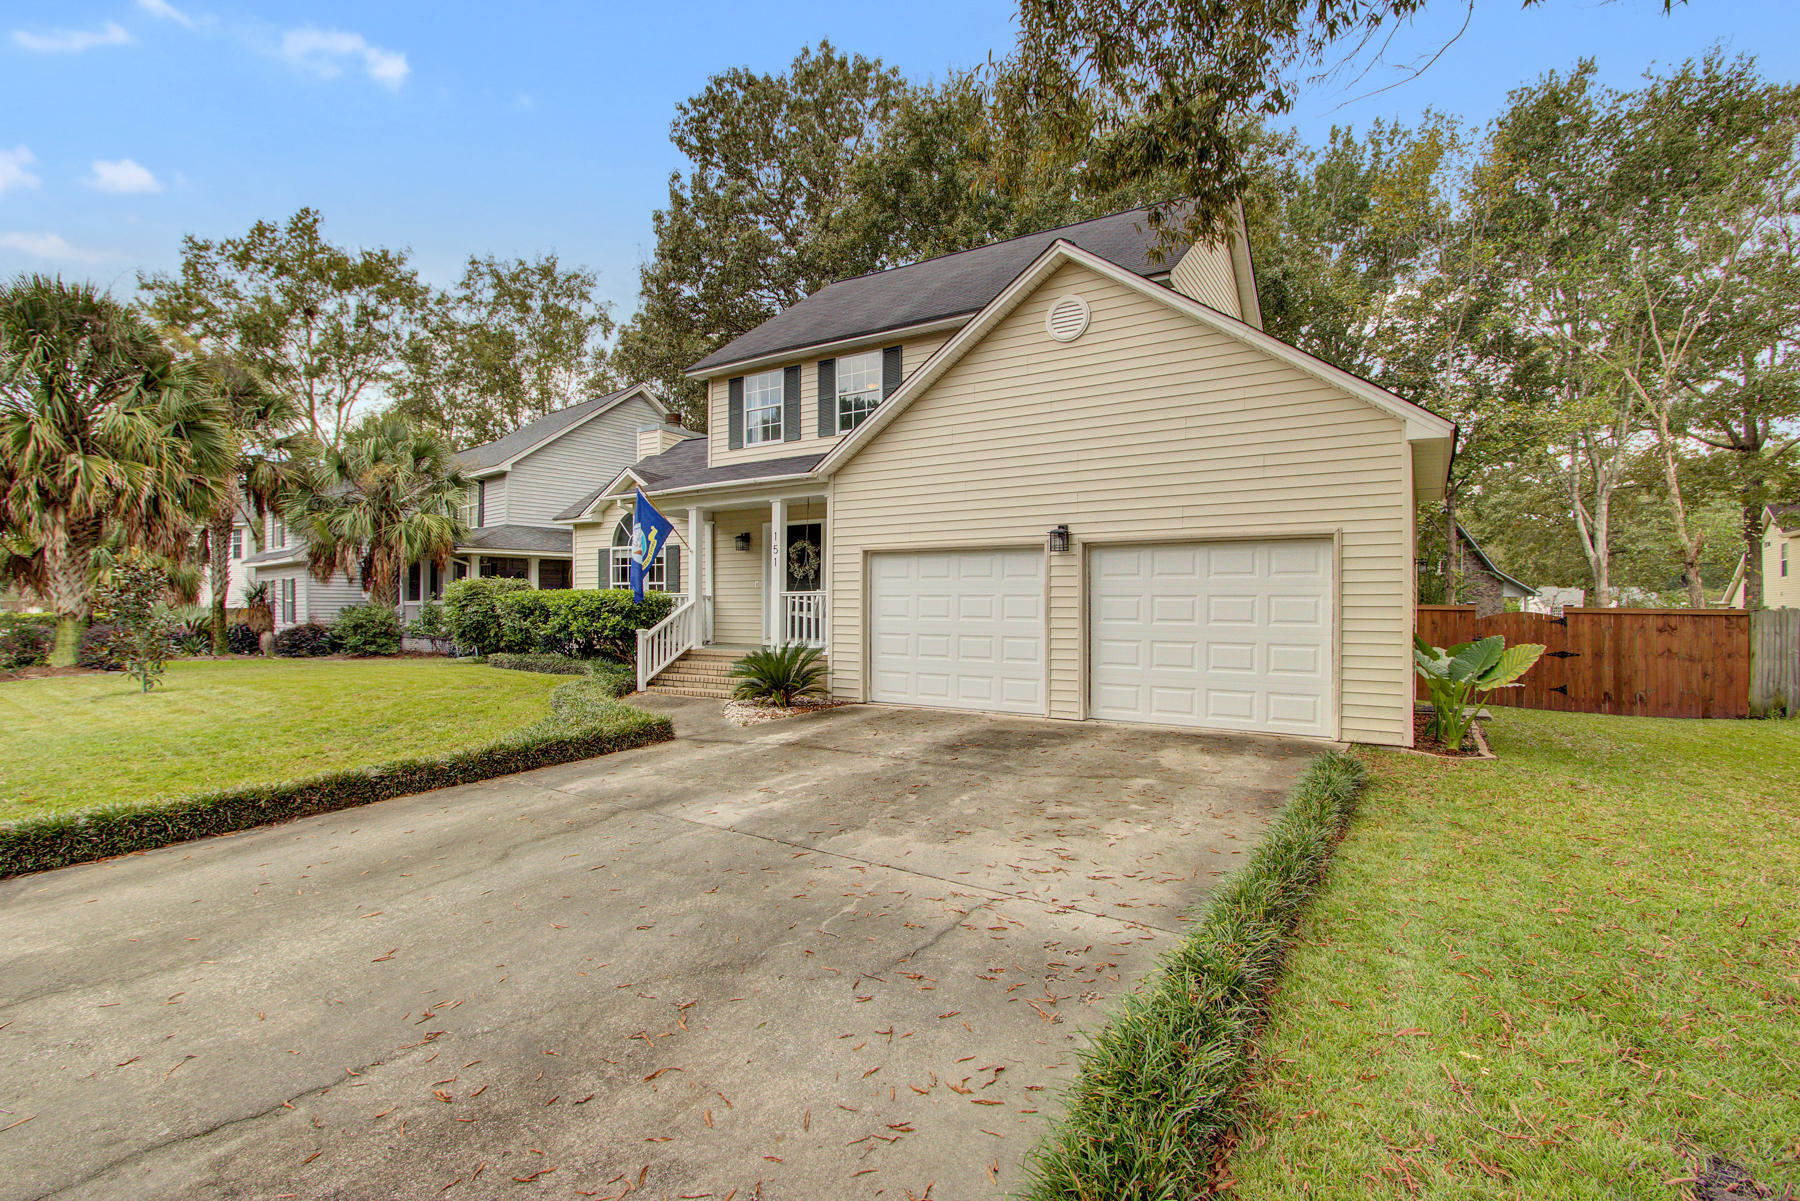 Crowfield Plantation Homes For Sale - 151 Winding Rock, Goose Creek, SC - 30